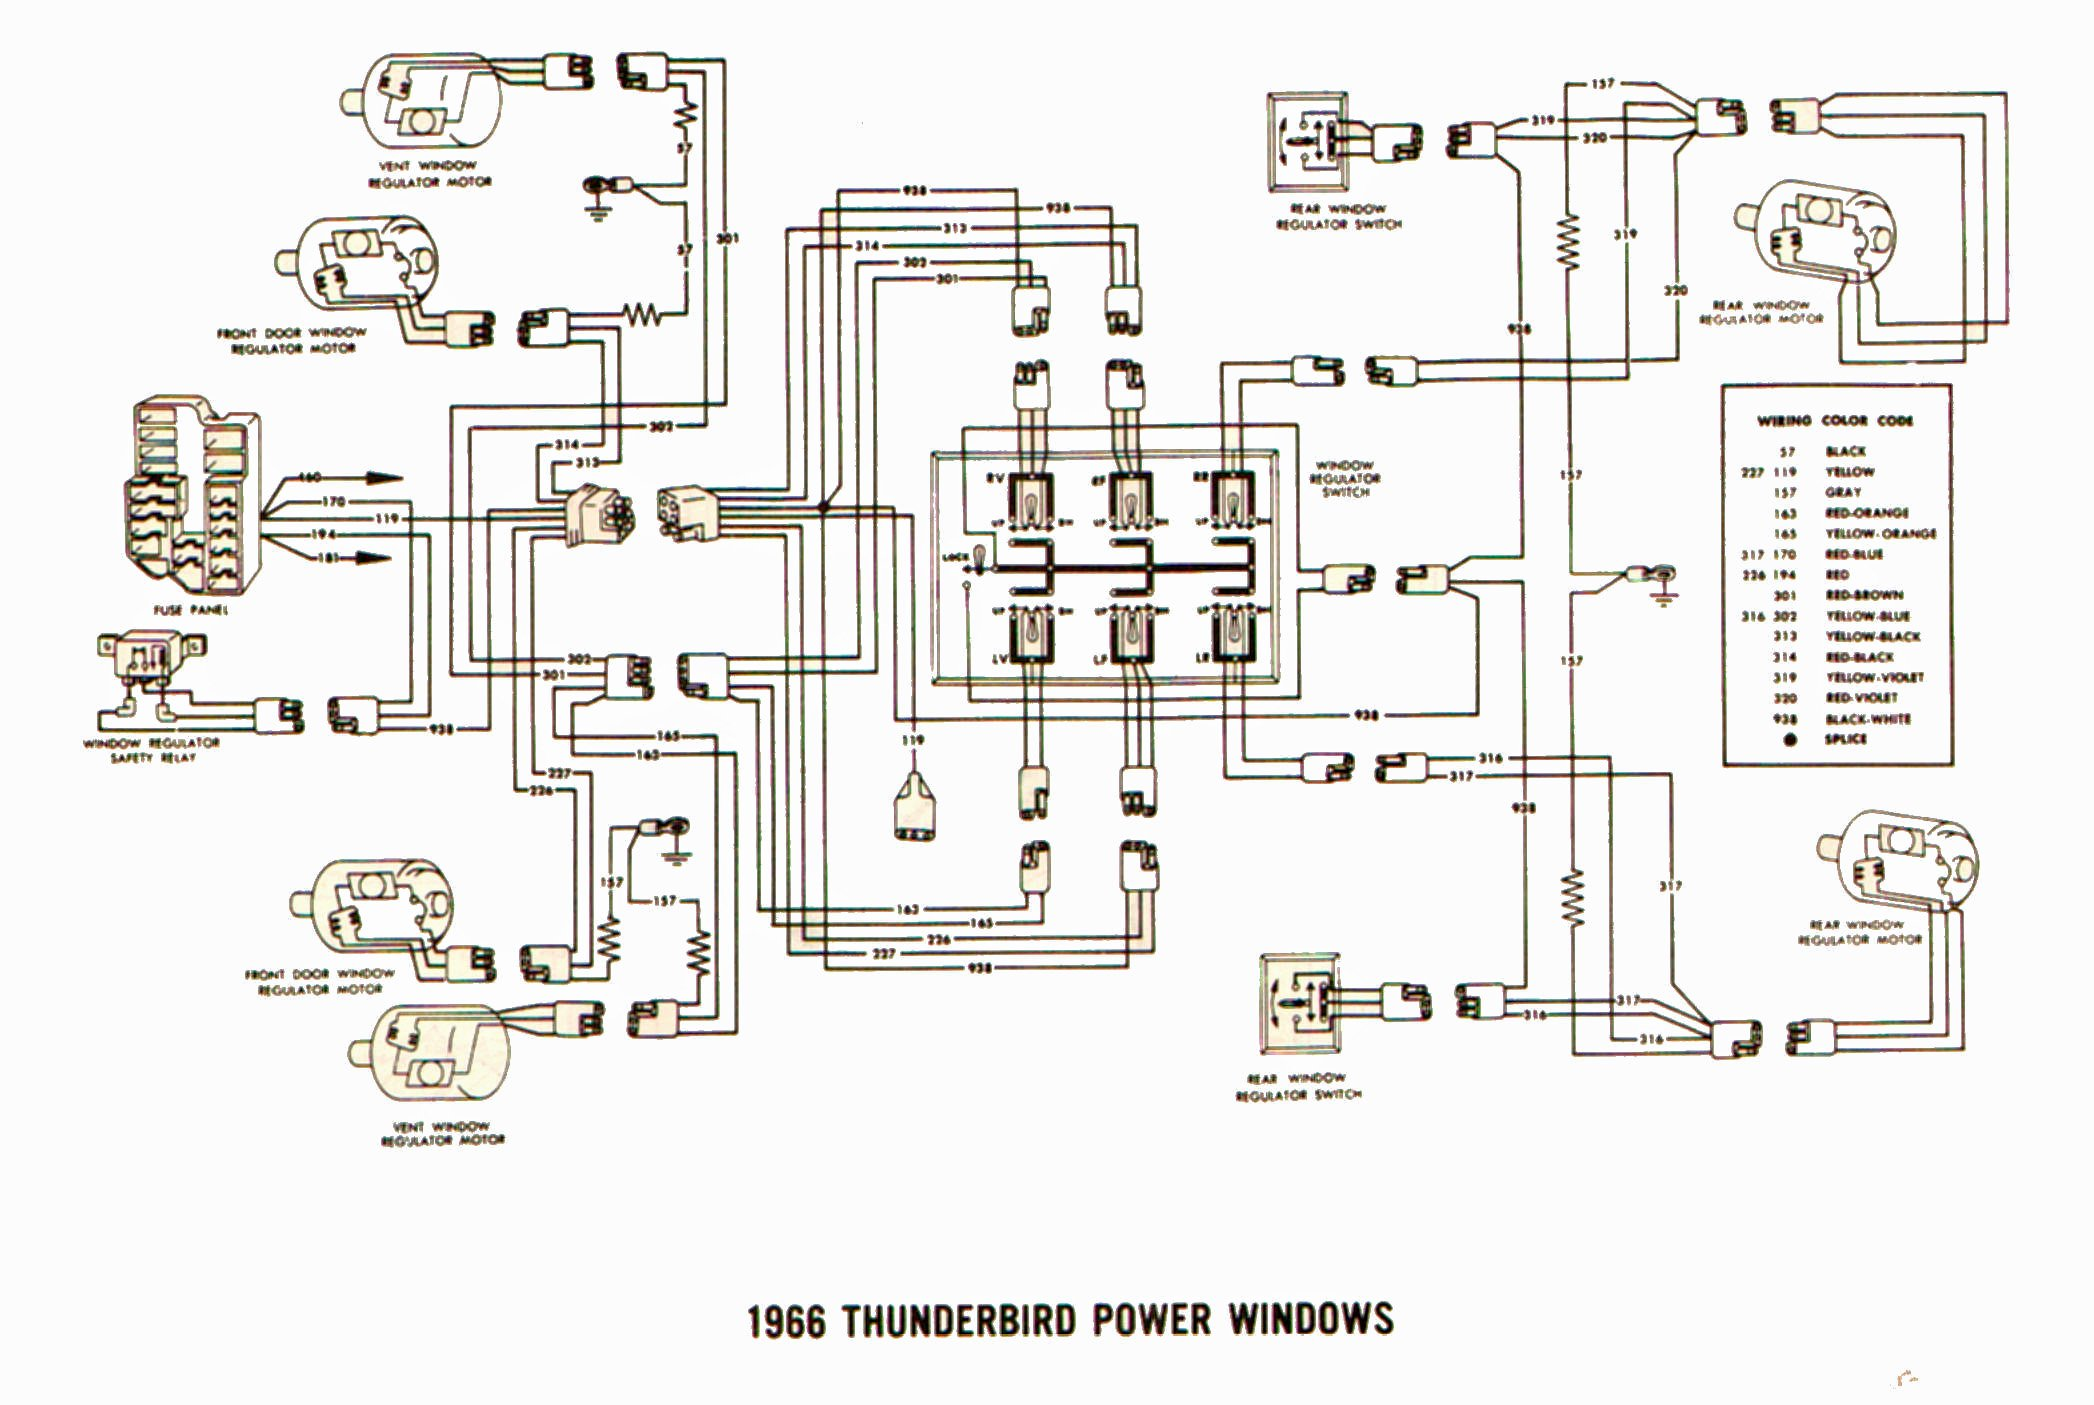 2013 07 12_071909_1966 thunderbird power_window_wiring diagram 1966 mustang wiring diagrams readingrat net 66 Thunderbird Wiring Diagram at edmiracle.co